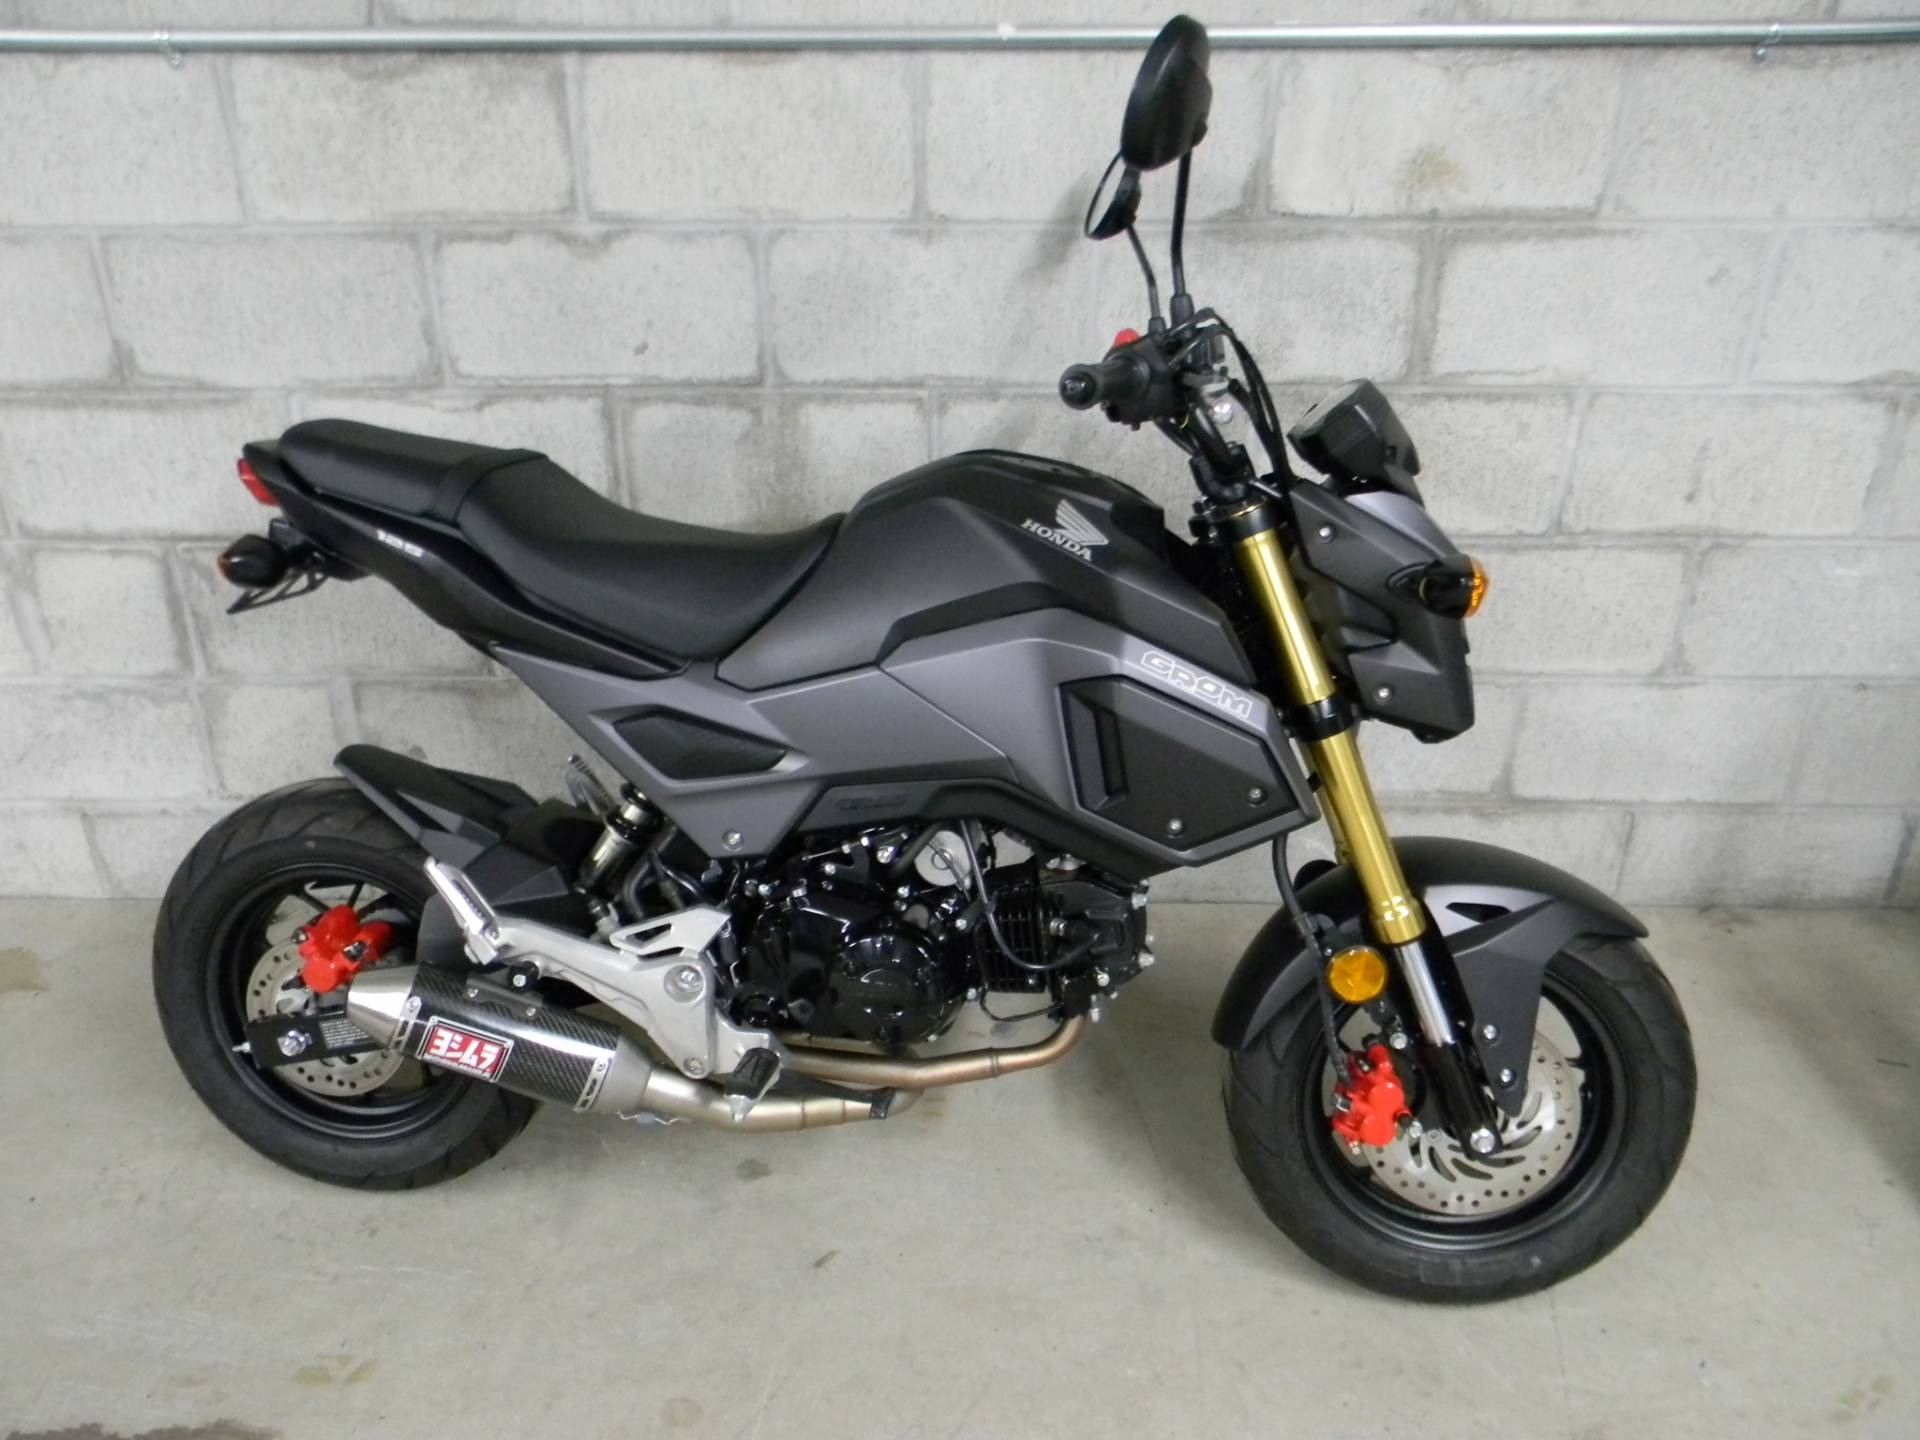 2017 Honda Grom Motorcycles Springfield Massachusetts N A